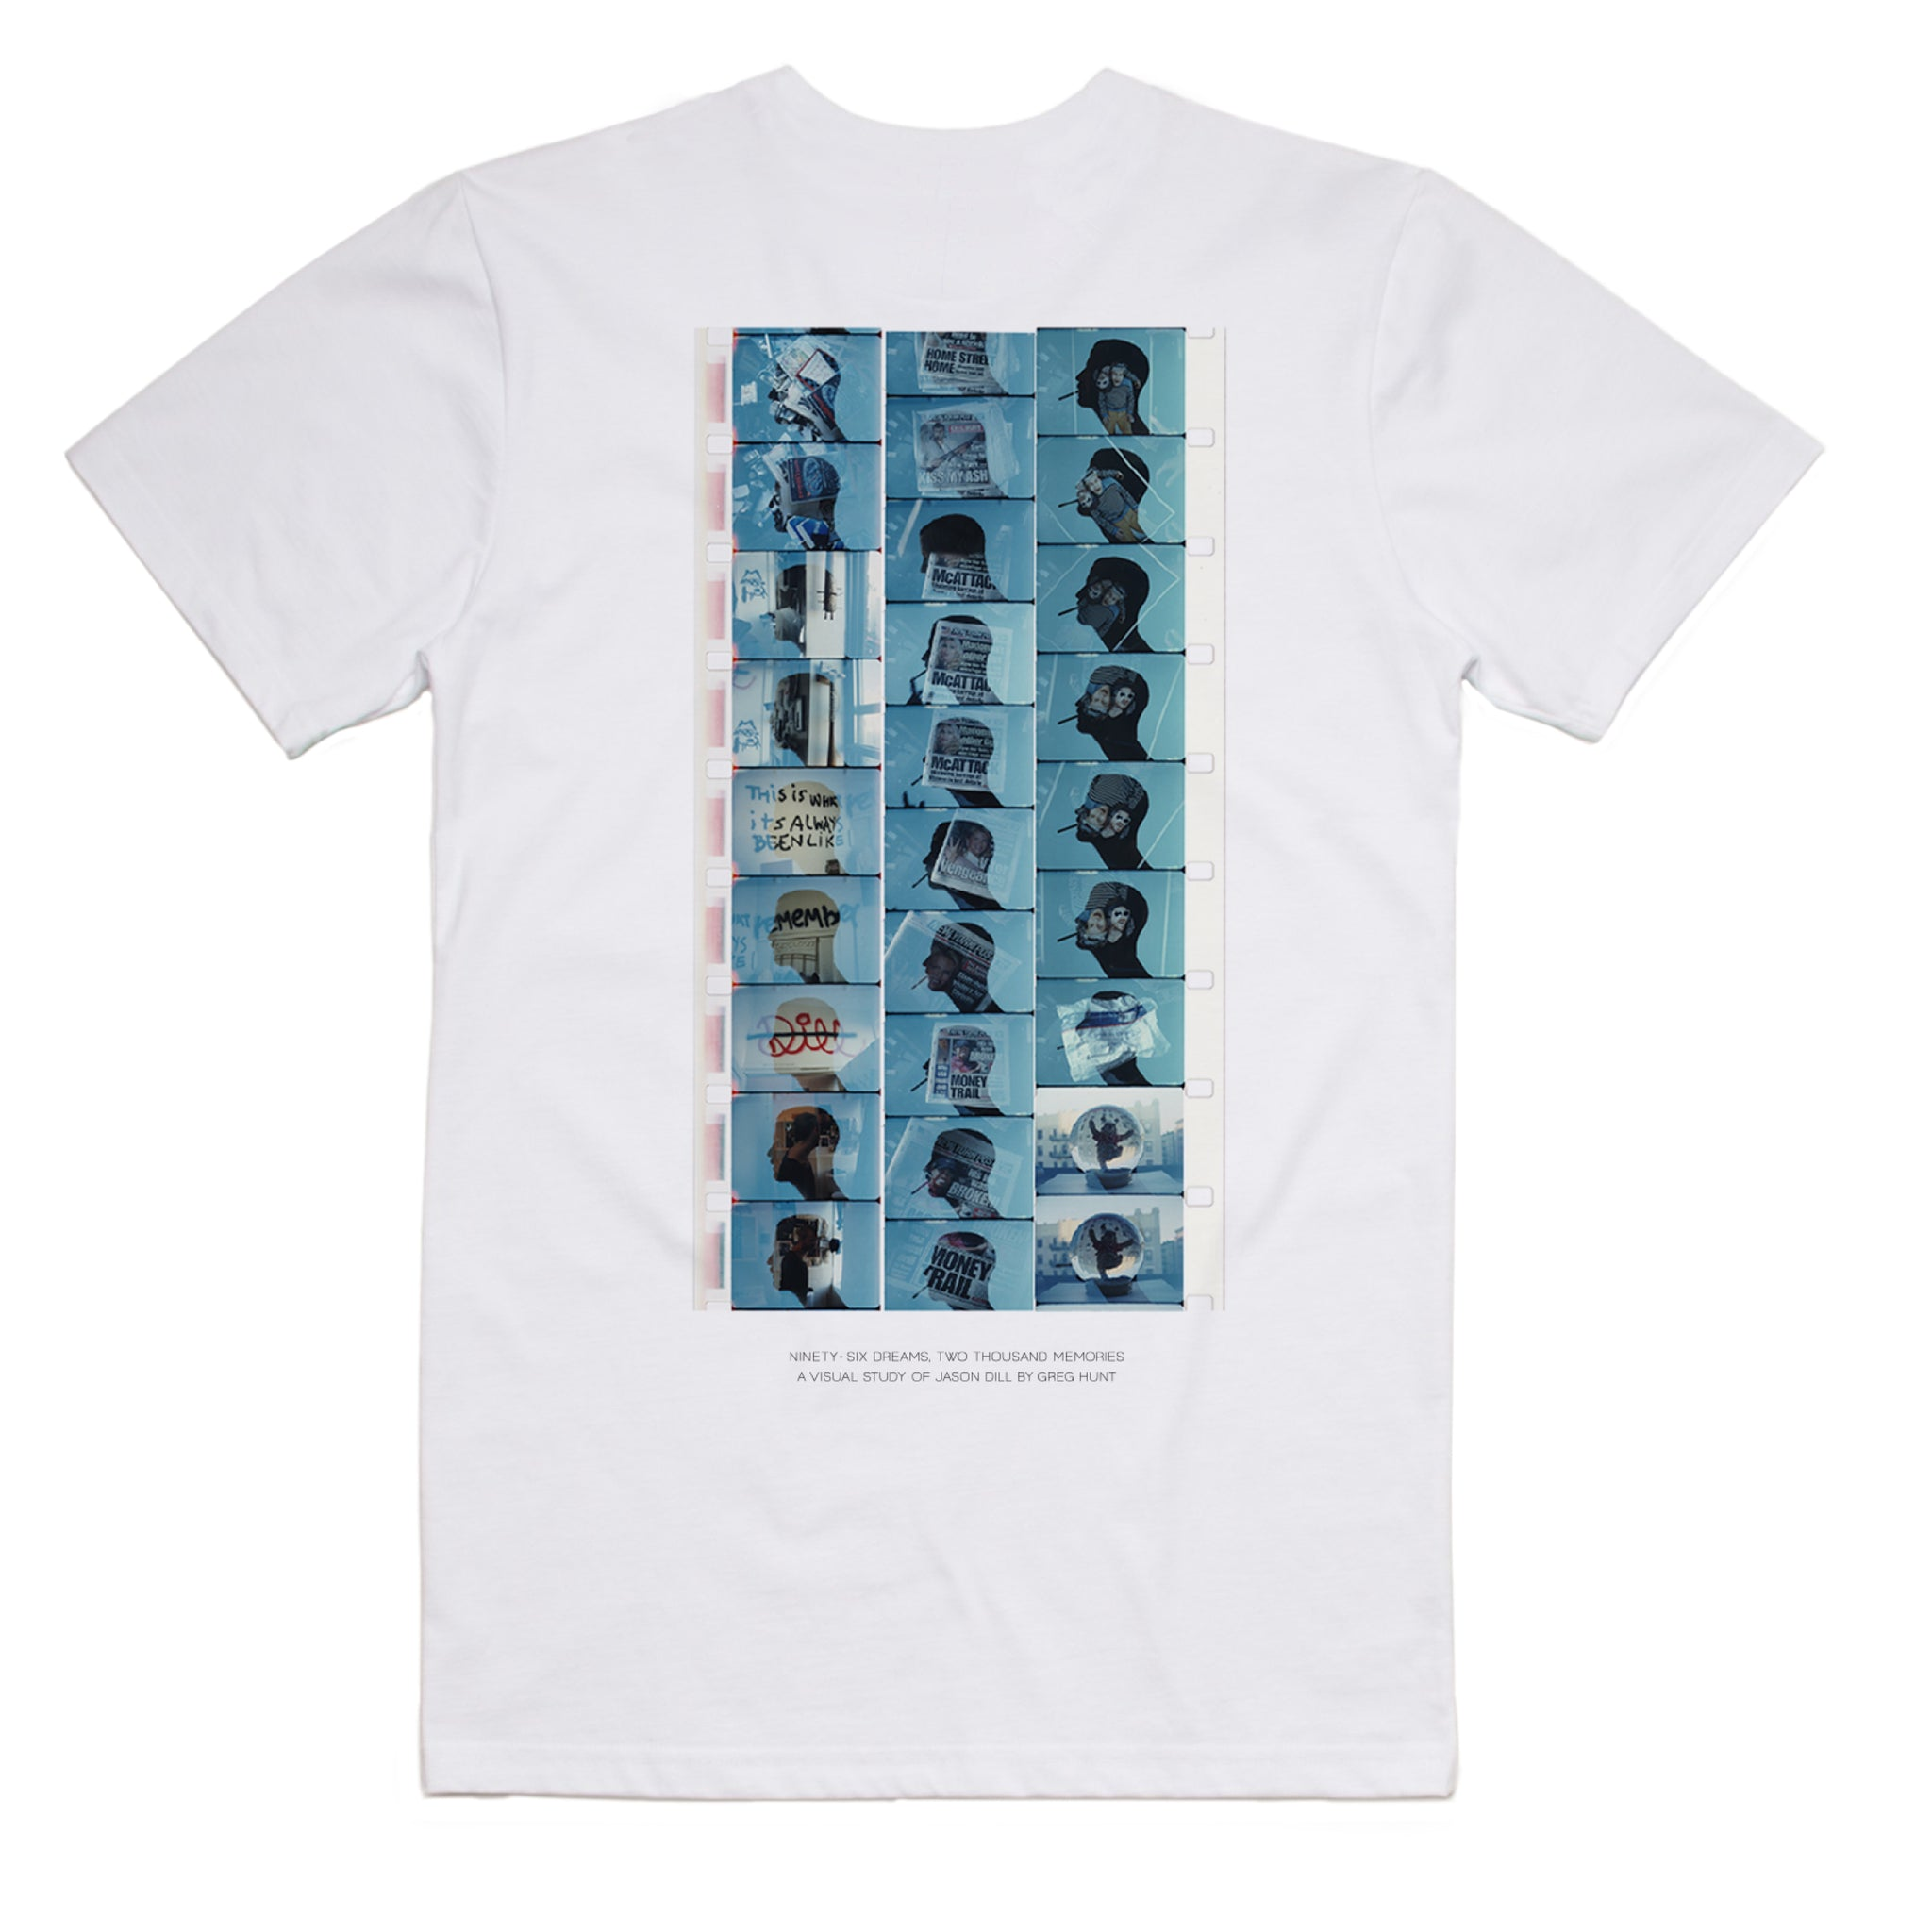 NINETY SIX DREAMS, TWO THOUSAND MEMORIES - GREG HUNT T-SHIRT